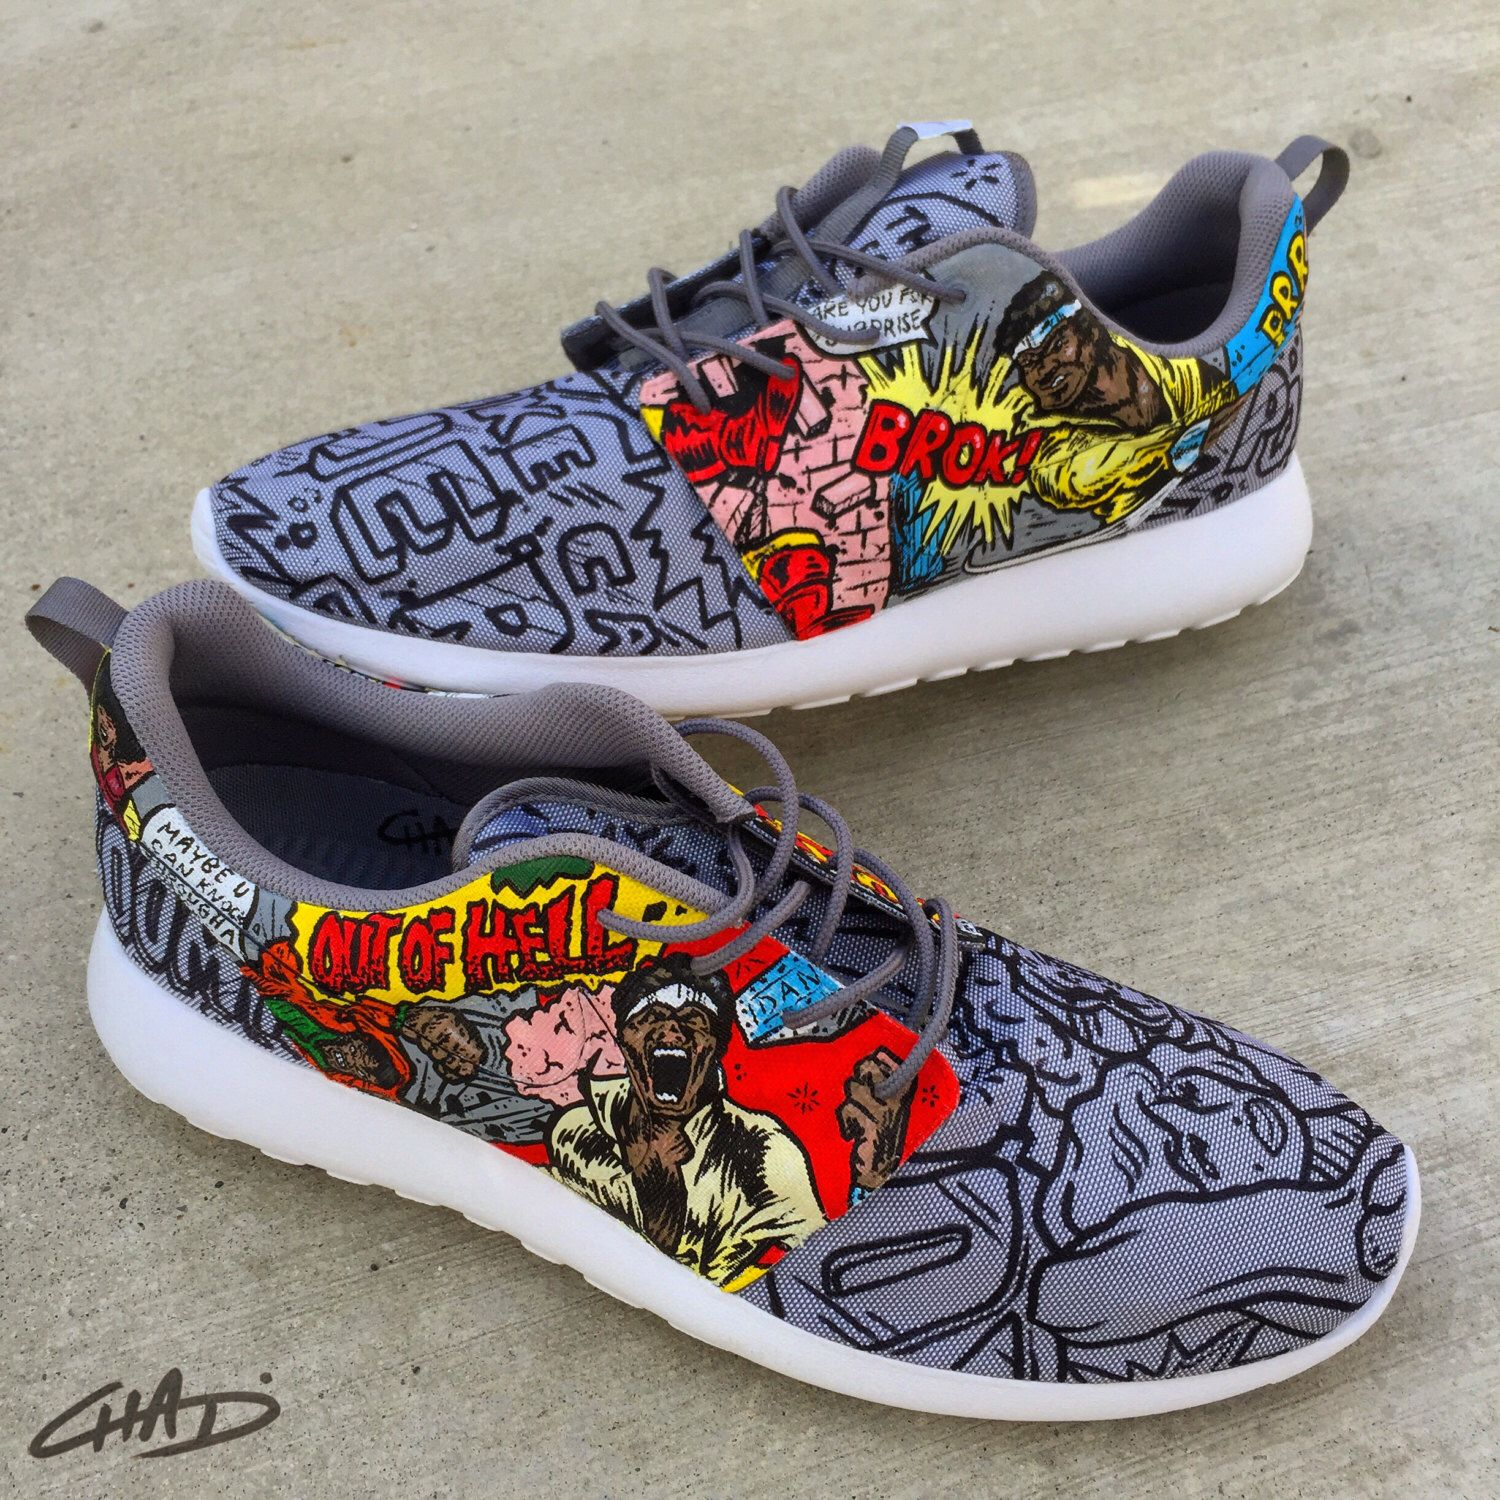 2460ad8a36837 ... good hero for hire luke cage custom hand painted nike roshe shoes by  artofthesole on etsy